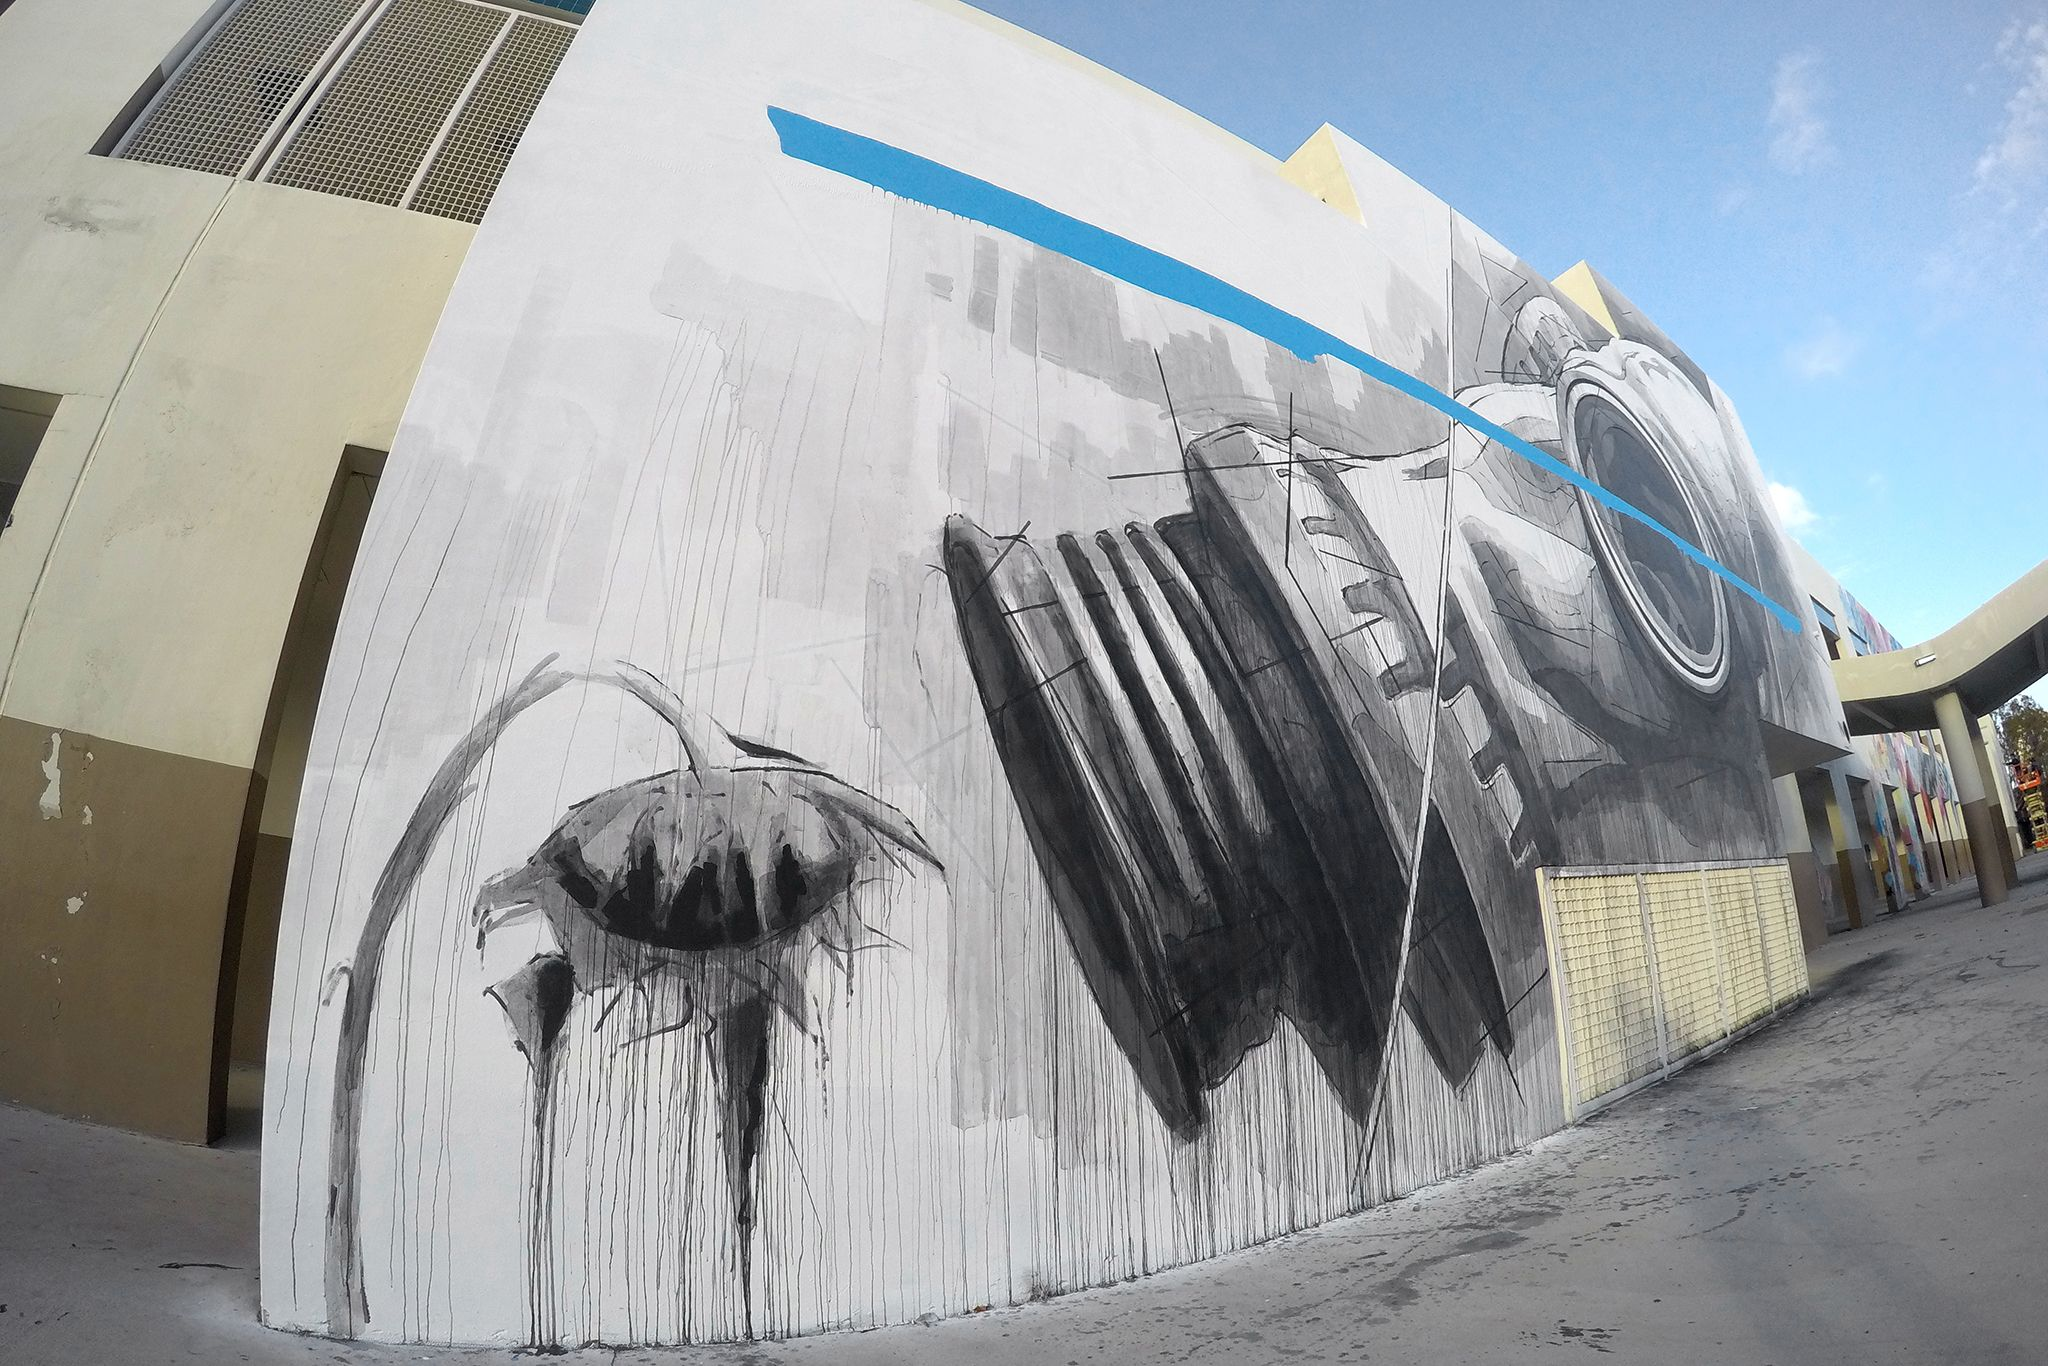 Artist Ino Location Miami Usa Material Acrylic Paint On Wall Title Fail Project The Raw Project Ino Artist Murals Street Art Street Art Urban Art